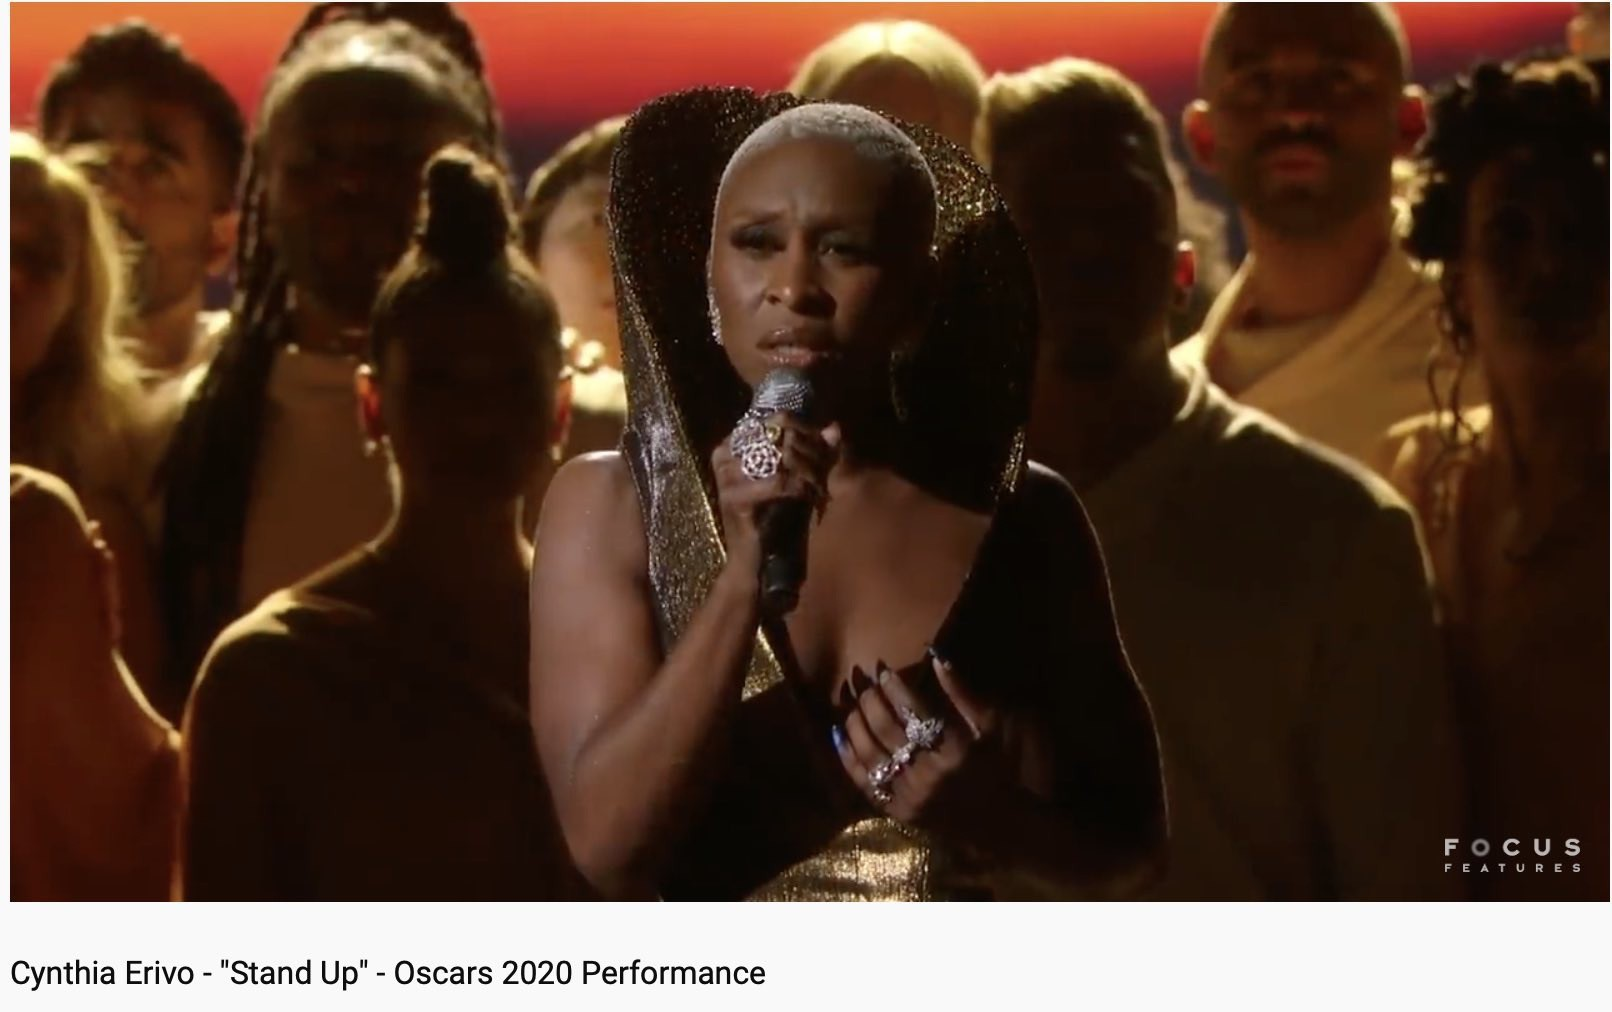 Cynthia Erivo singing on stage.